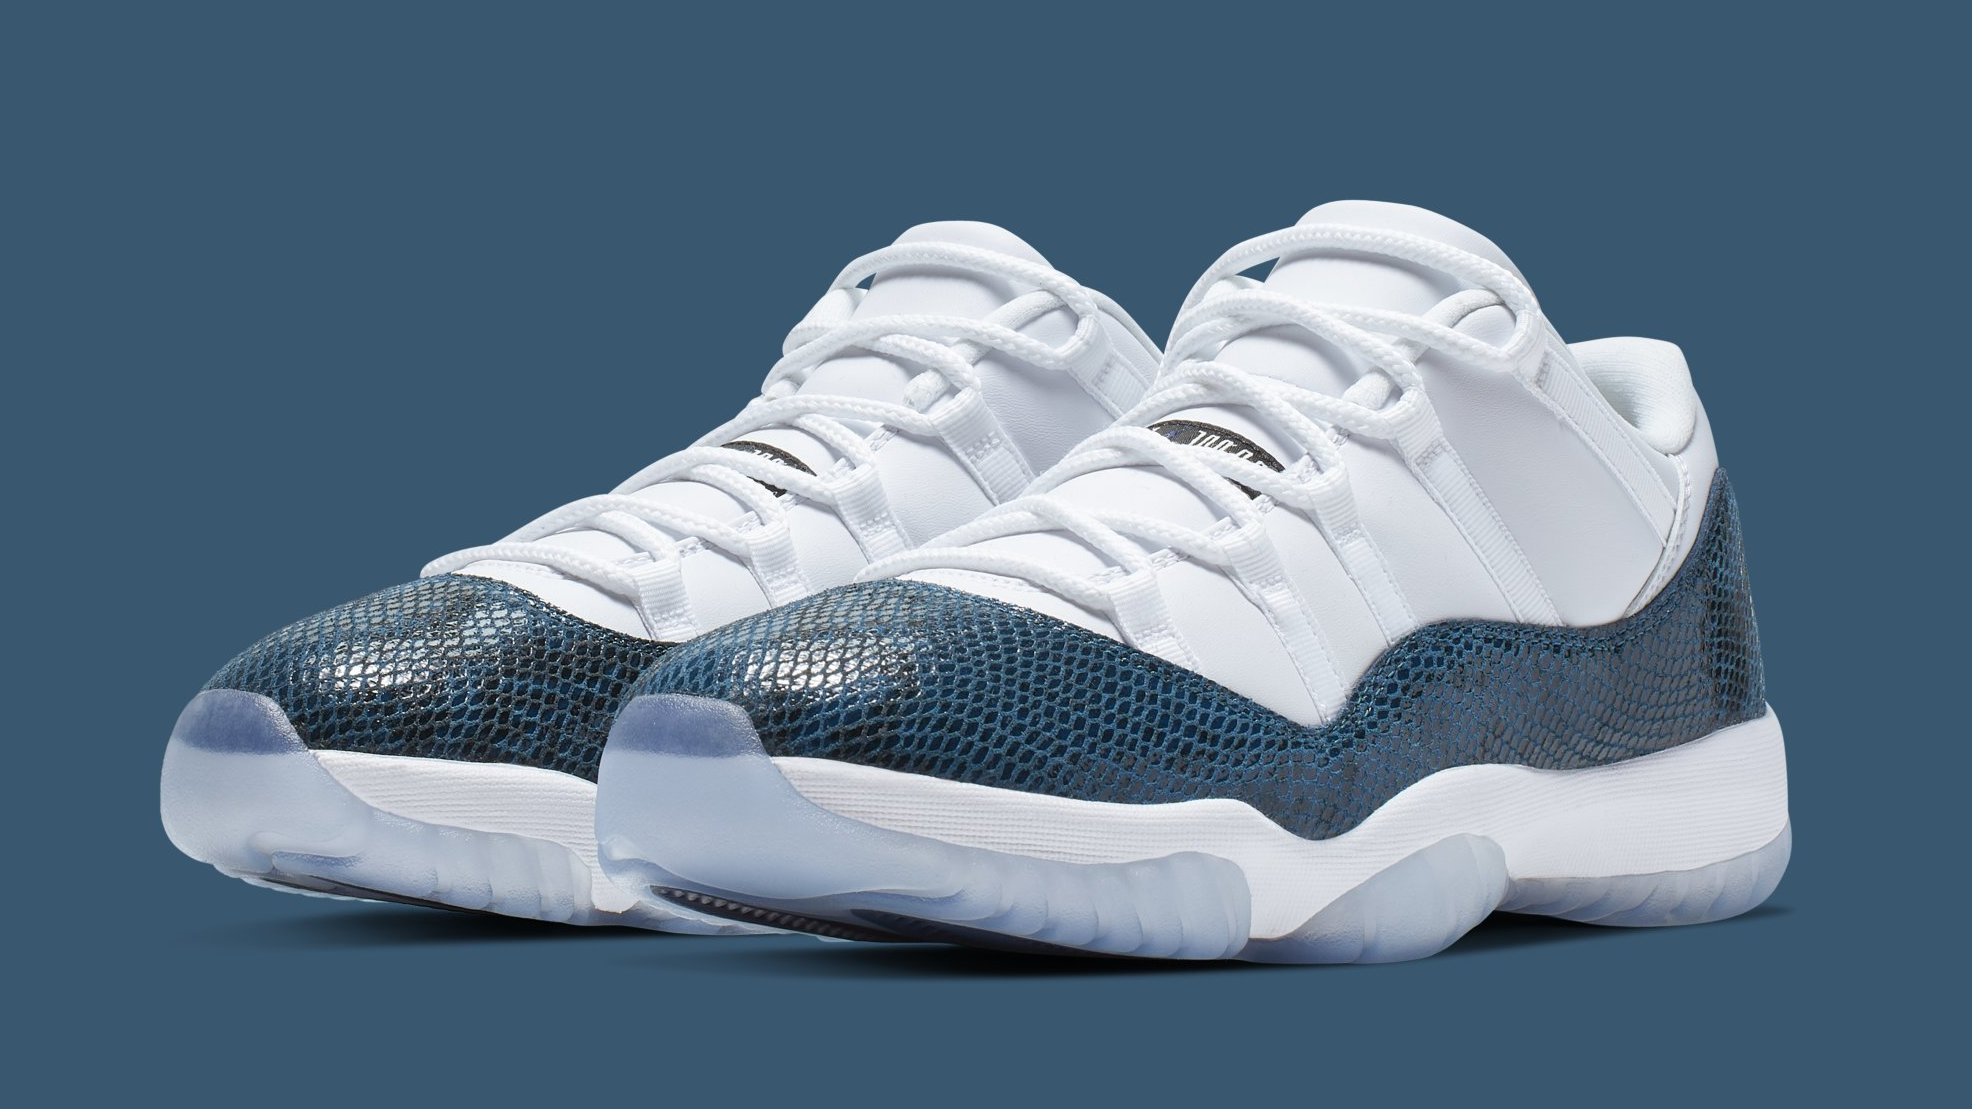 8ca2e177d5c344 Air Jordan 11 Low  Blue Snakeskin  Release Date CD6846-102